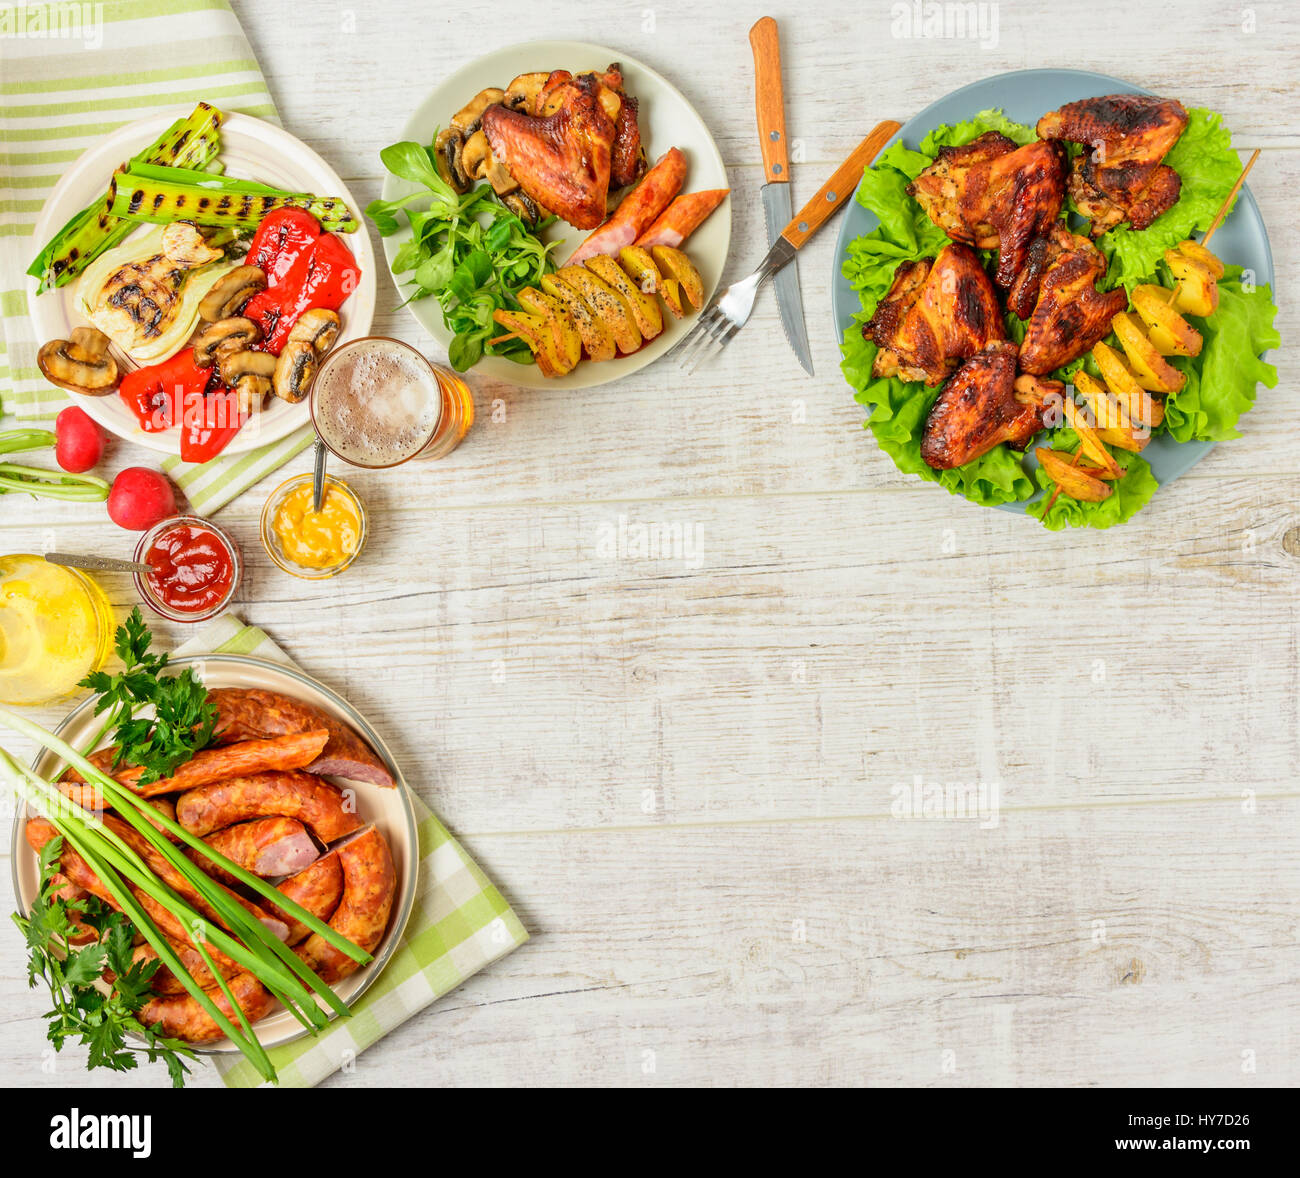 Dinner table with variety food, fried chicken wings, sausages, grilled vegetables in a pan, salad and  lager beer Stock Photo